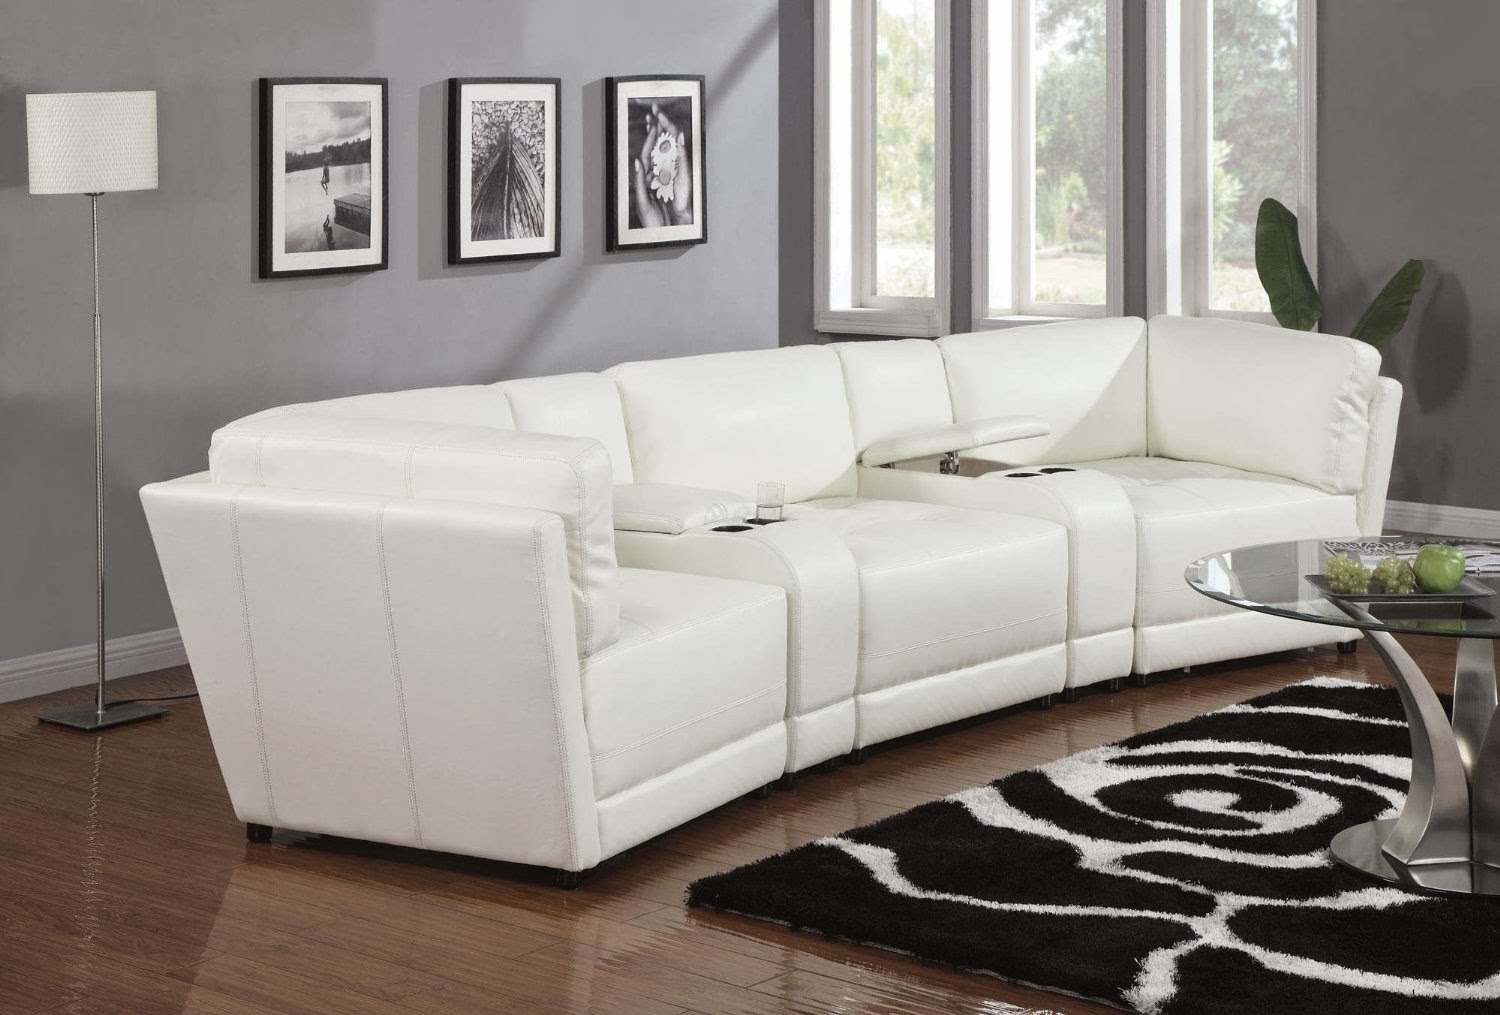 Petite Sectional Sofa – Cleanupflorida Regarding Vancouver Sectional Sofas (Image 9 of 10)